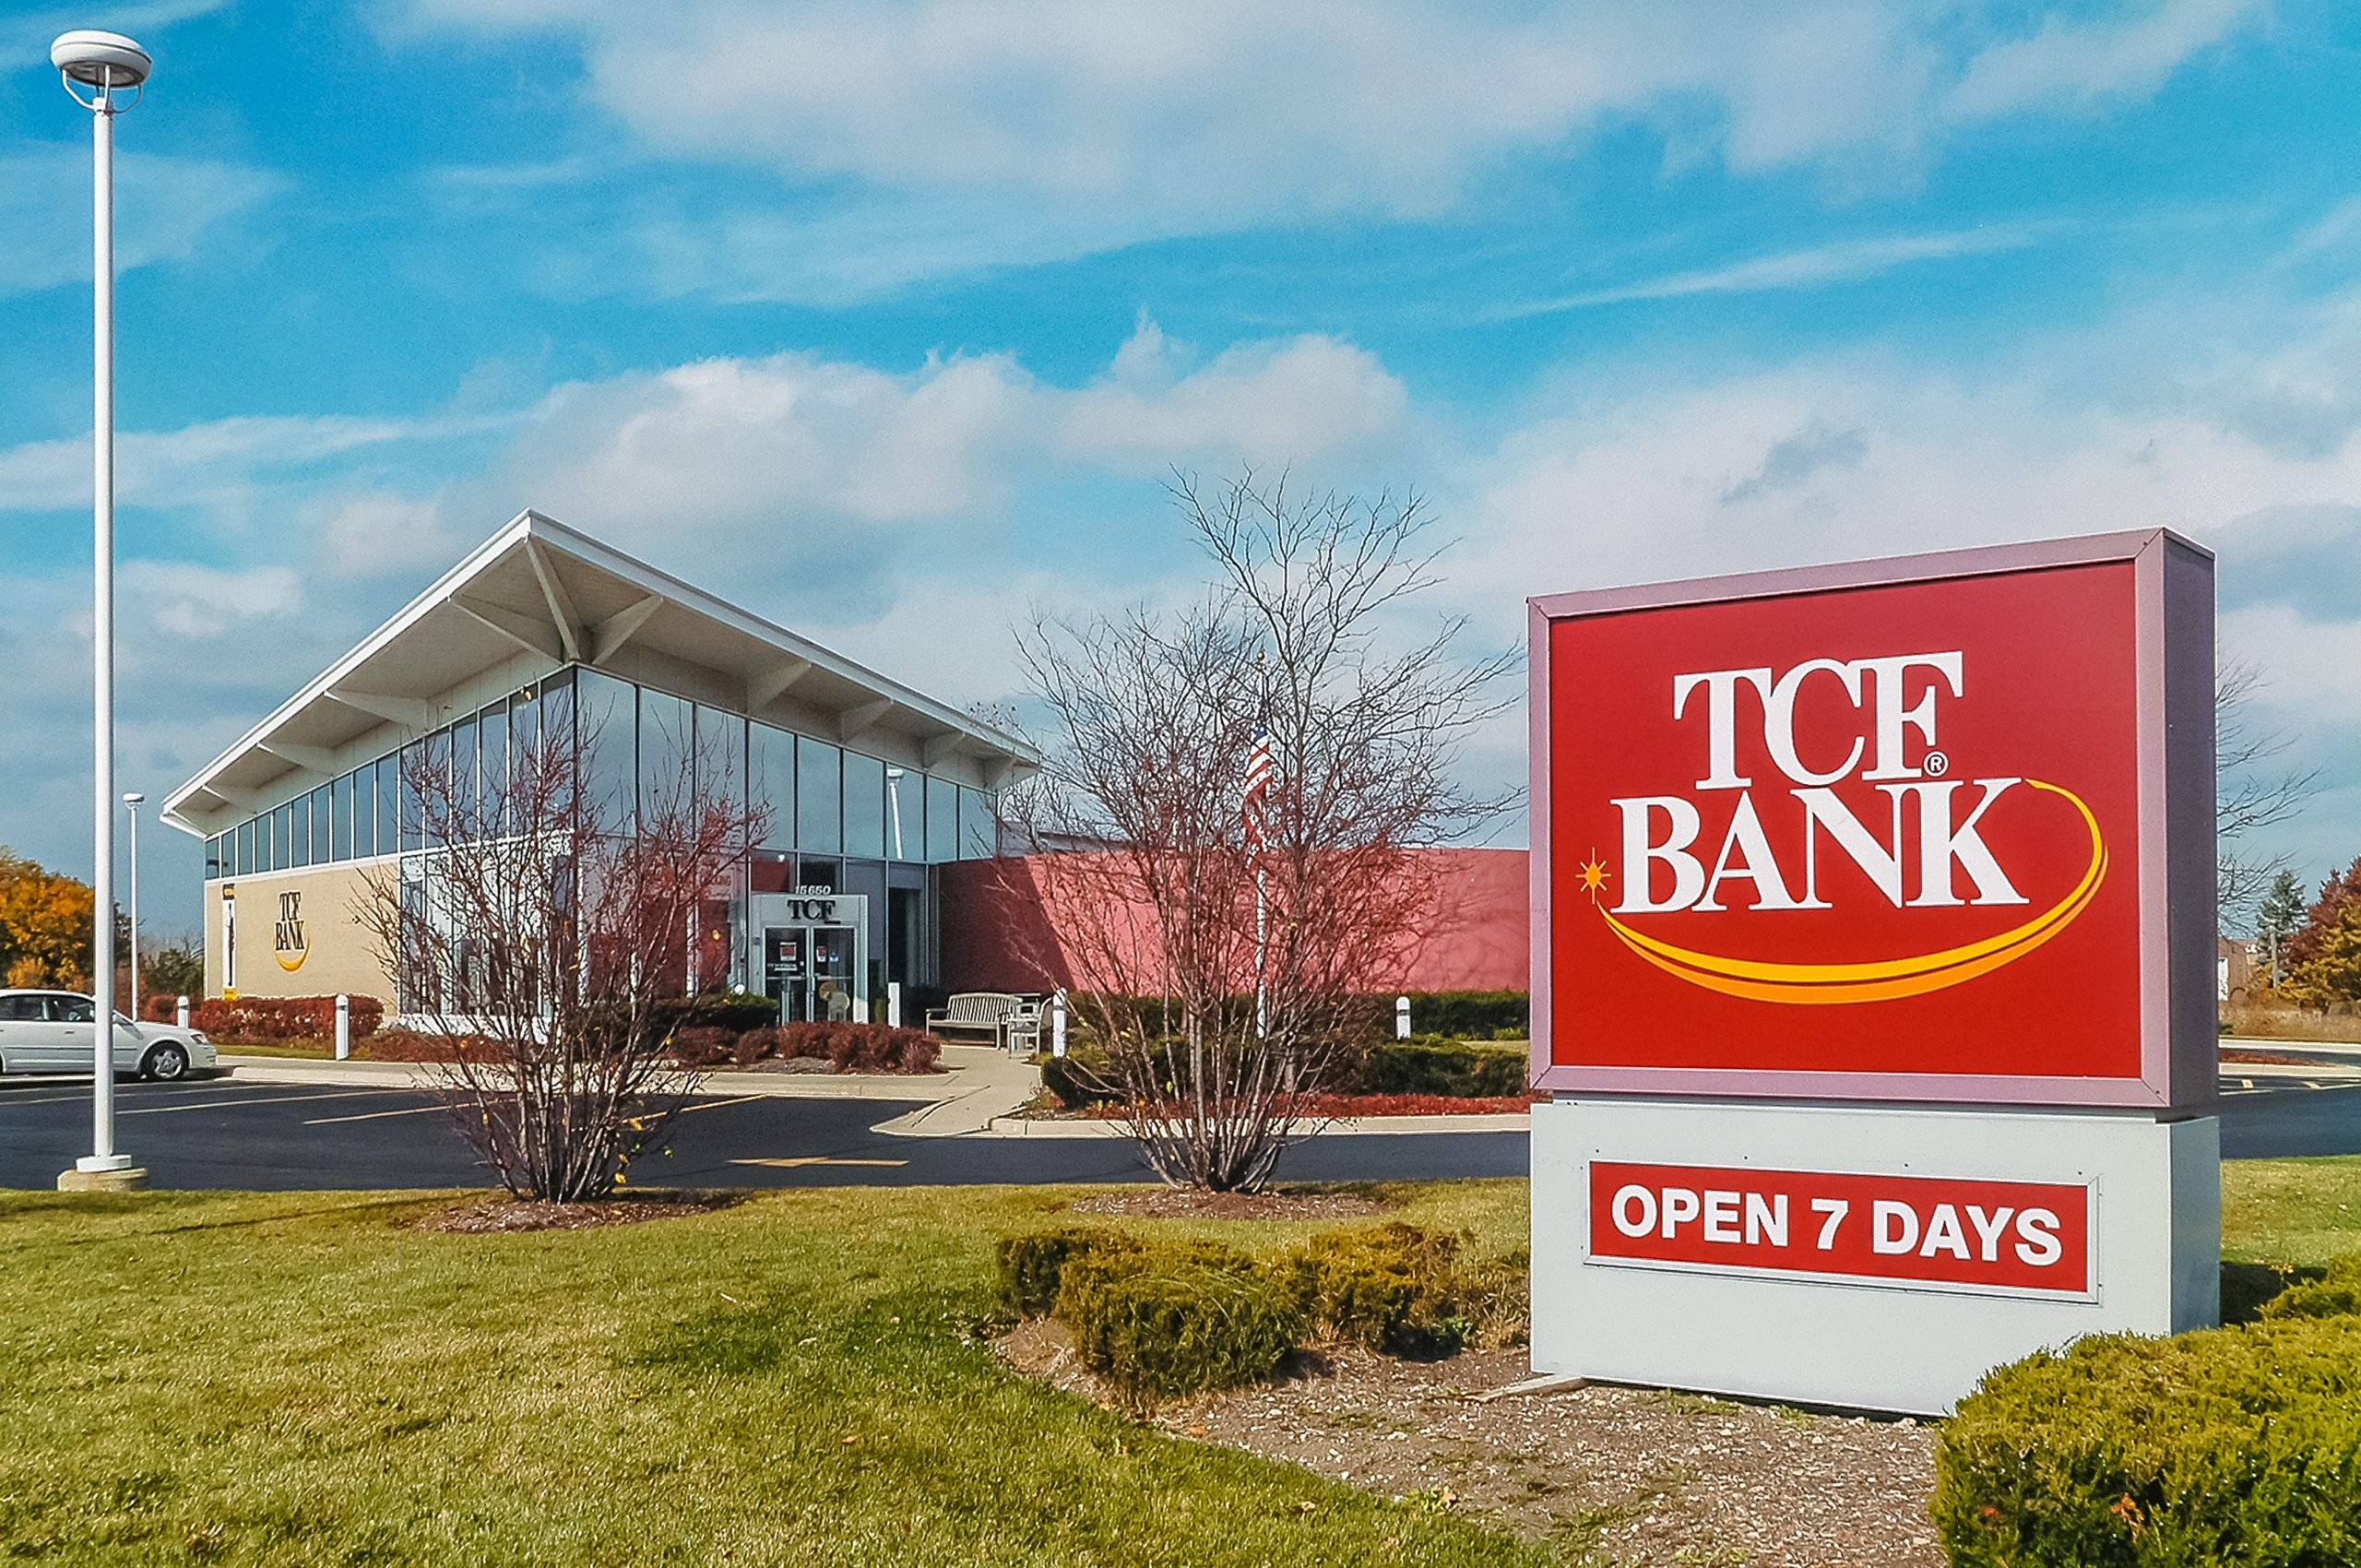 TCF Bank Orland Park. Prices, scheduling and policies.